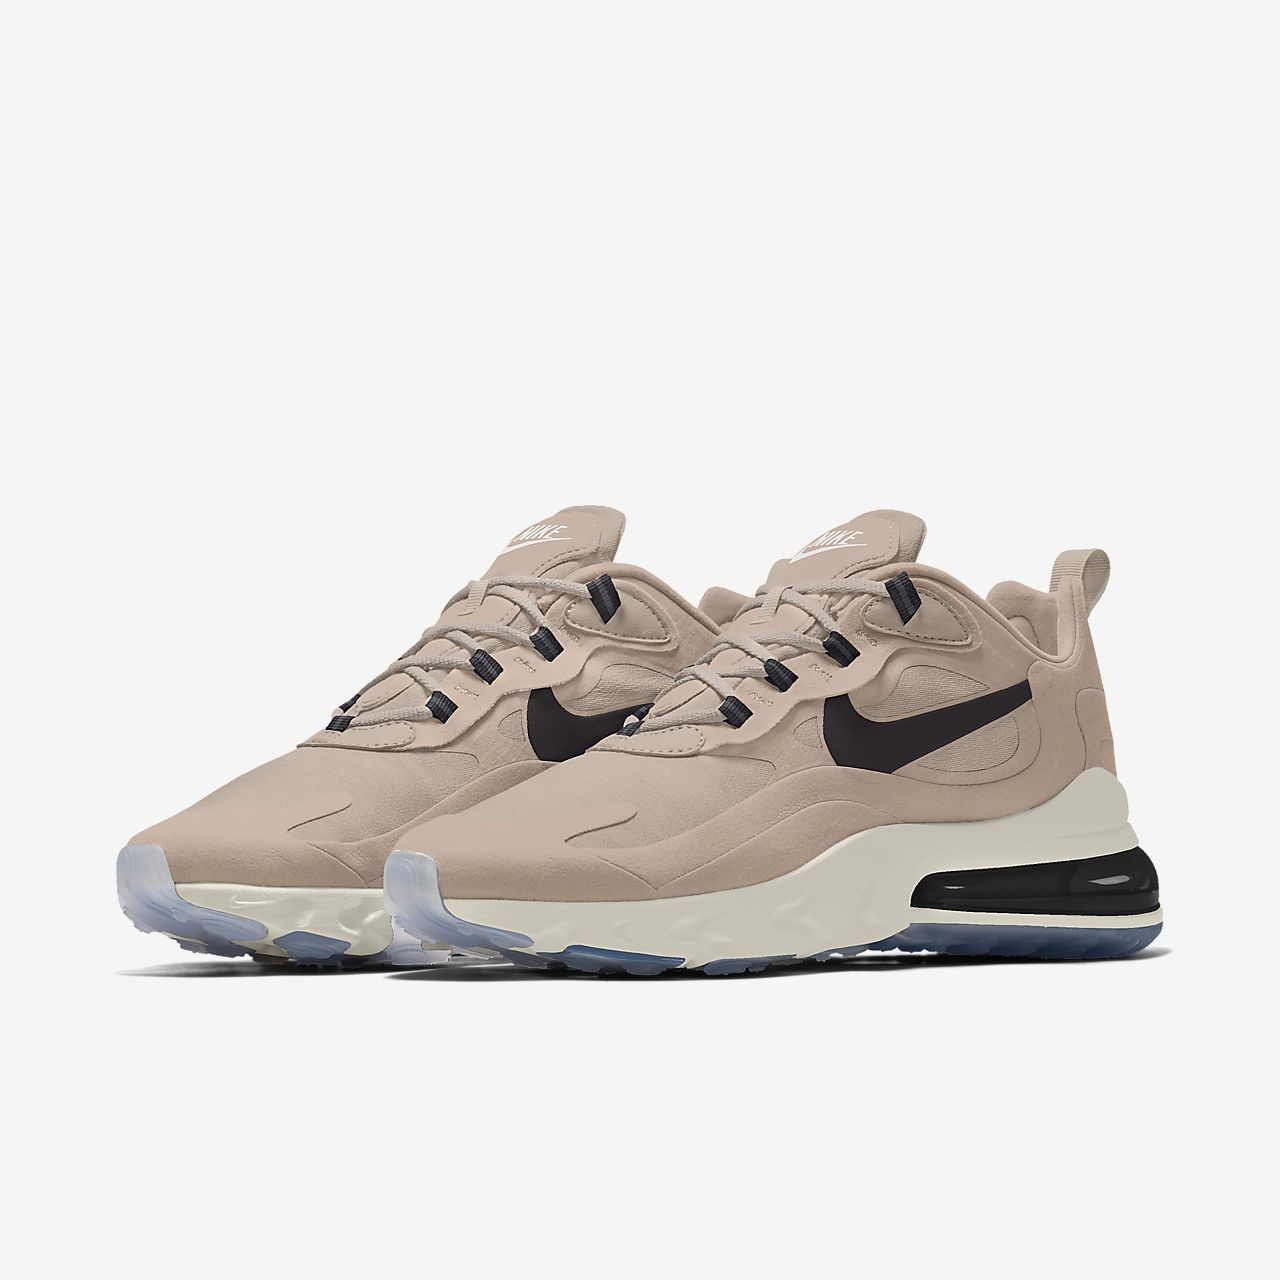 Nike Air Max 270 React By You personalisierbarer Schuh